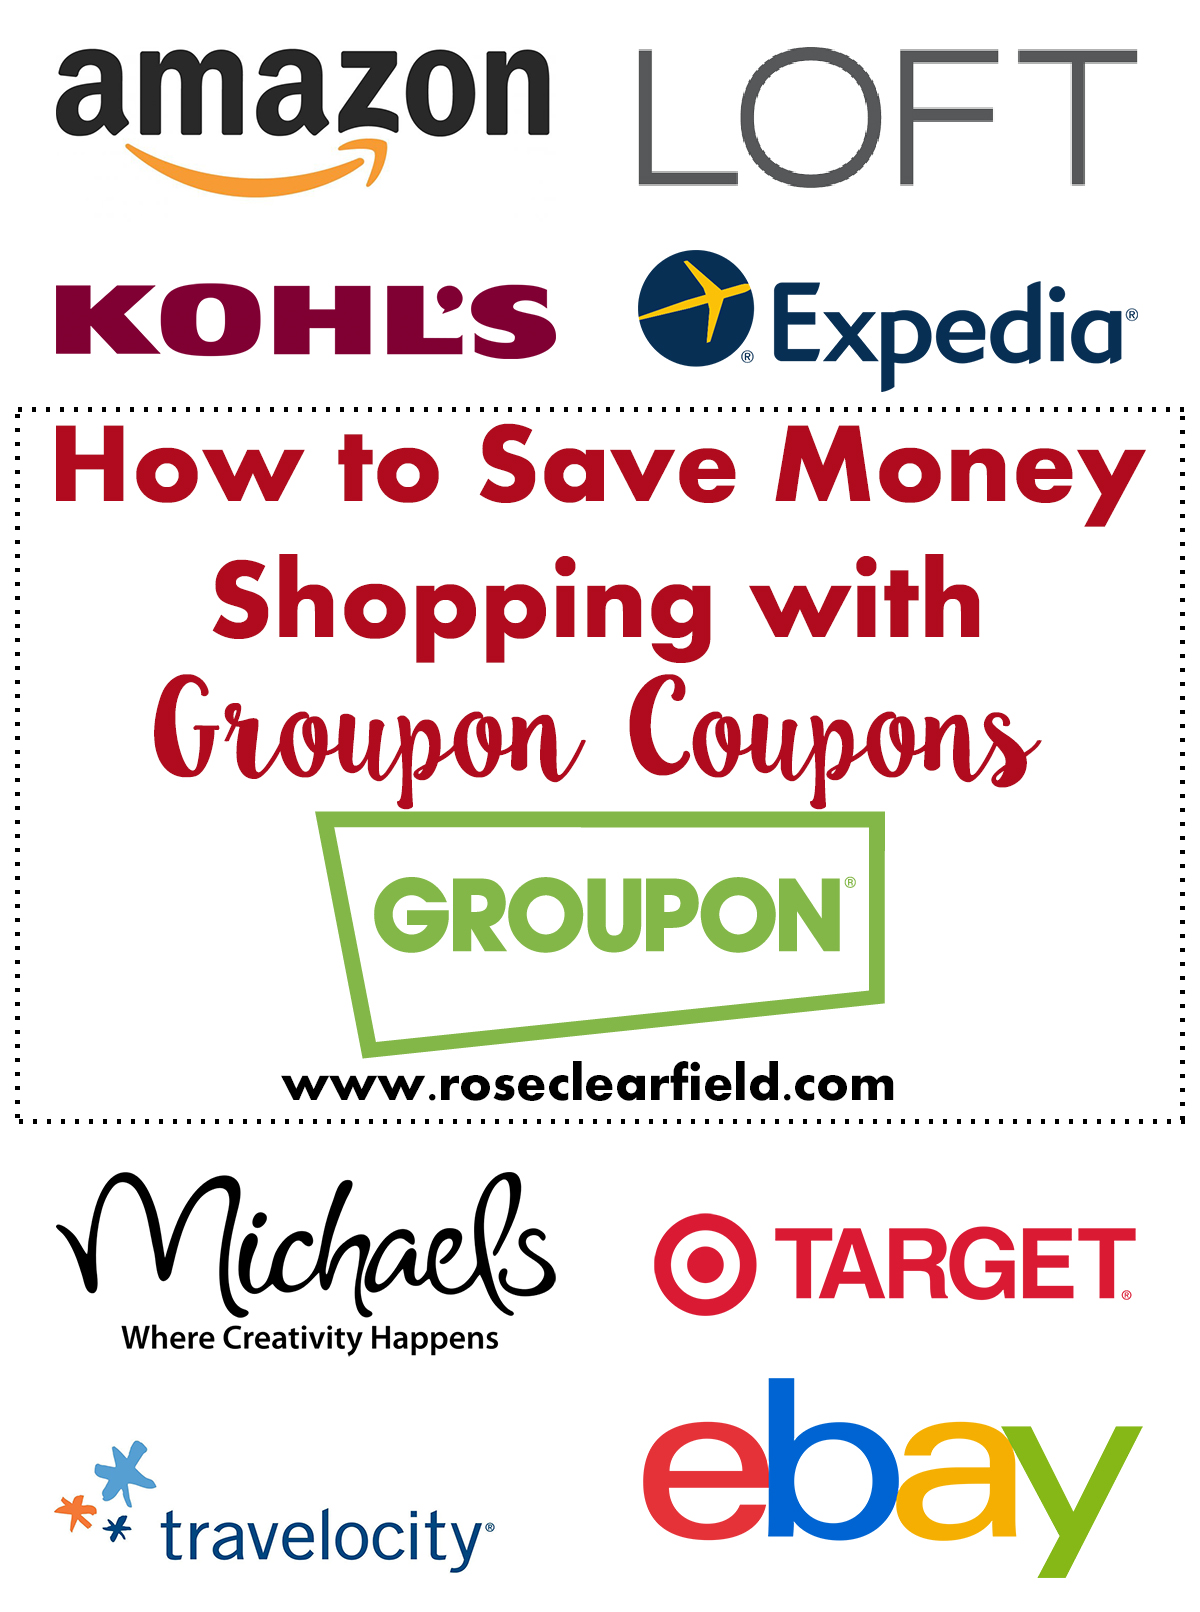 How to Save Money Shopping With Groupon Coupons | https://www.roseclearfield.com